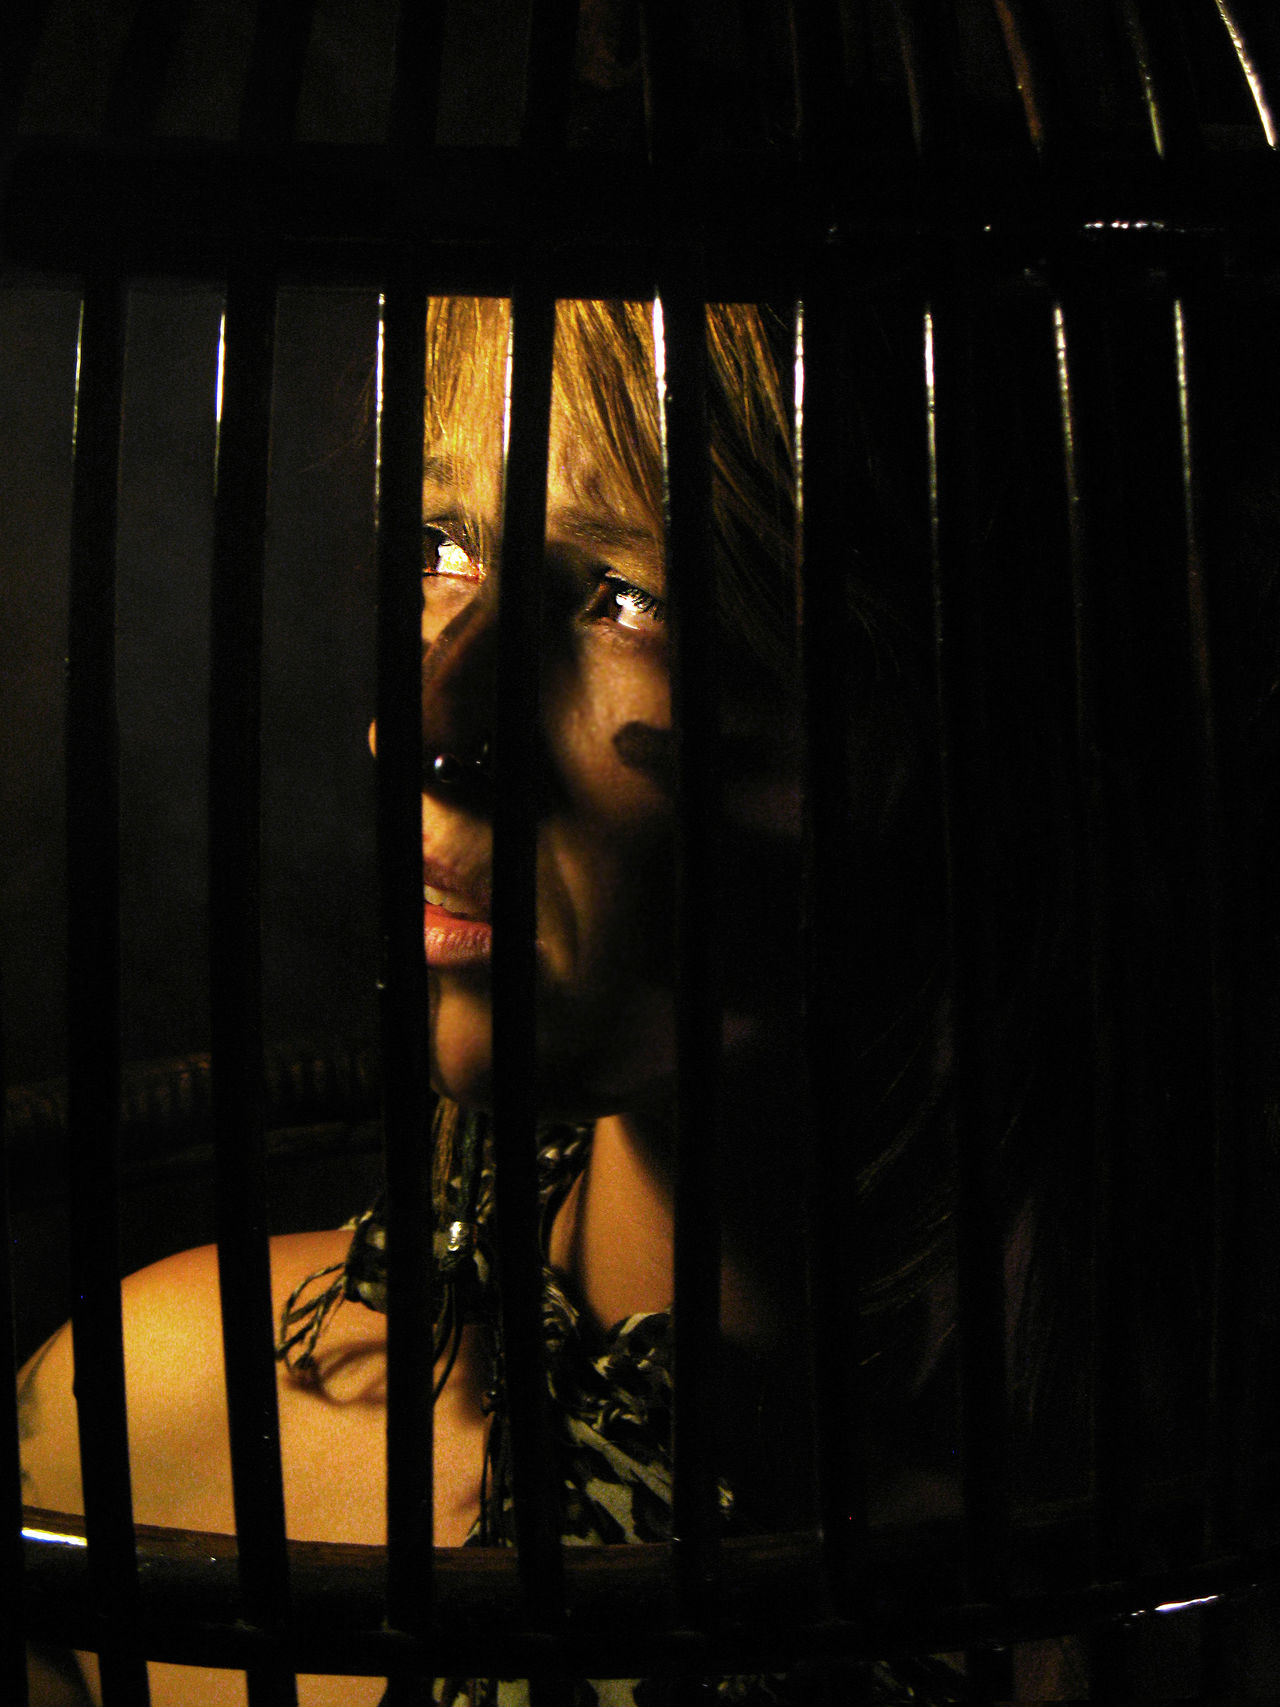 WIld prisioner Aboriginal Bounden Cage Caged Caged Freedom Escape From Reality Freedom Girl In A Cage Indian Indoors  Jail House Liberty One Person People Portrait Portrait Of A Woman Prision Prisioner Real People Wild Wild Girl Woman